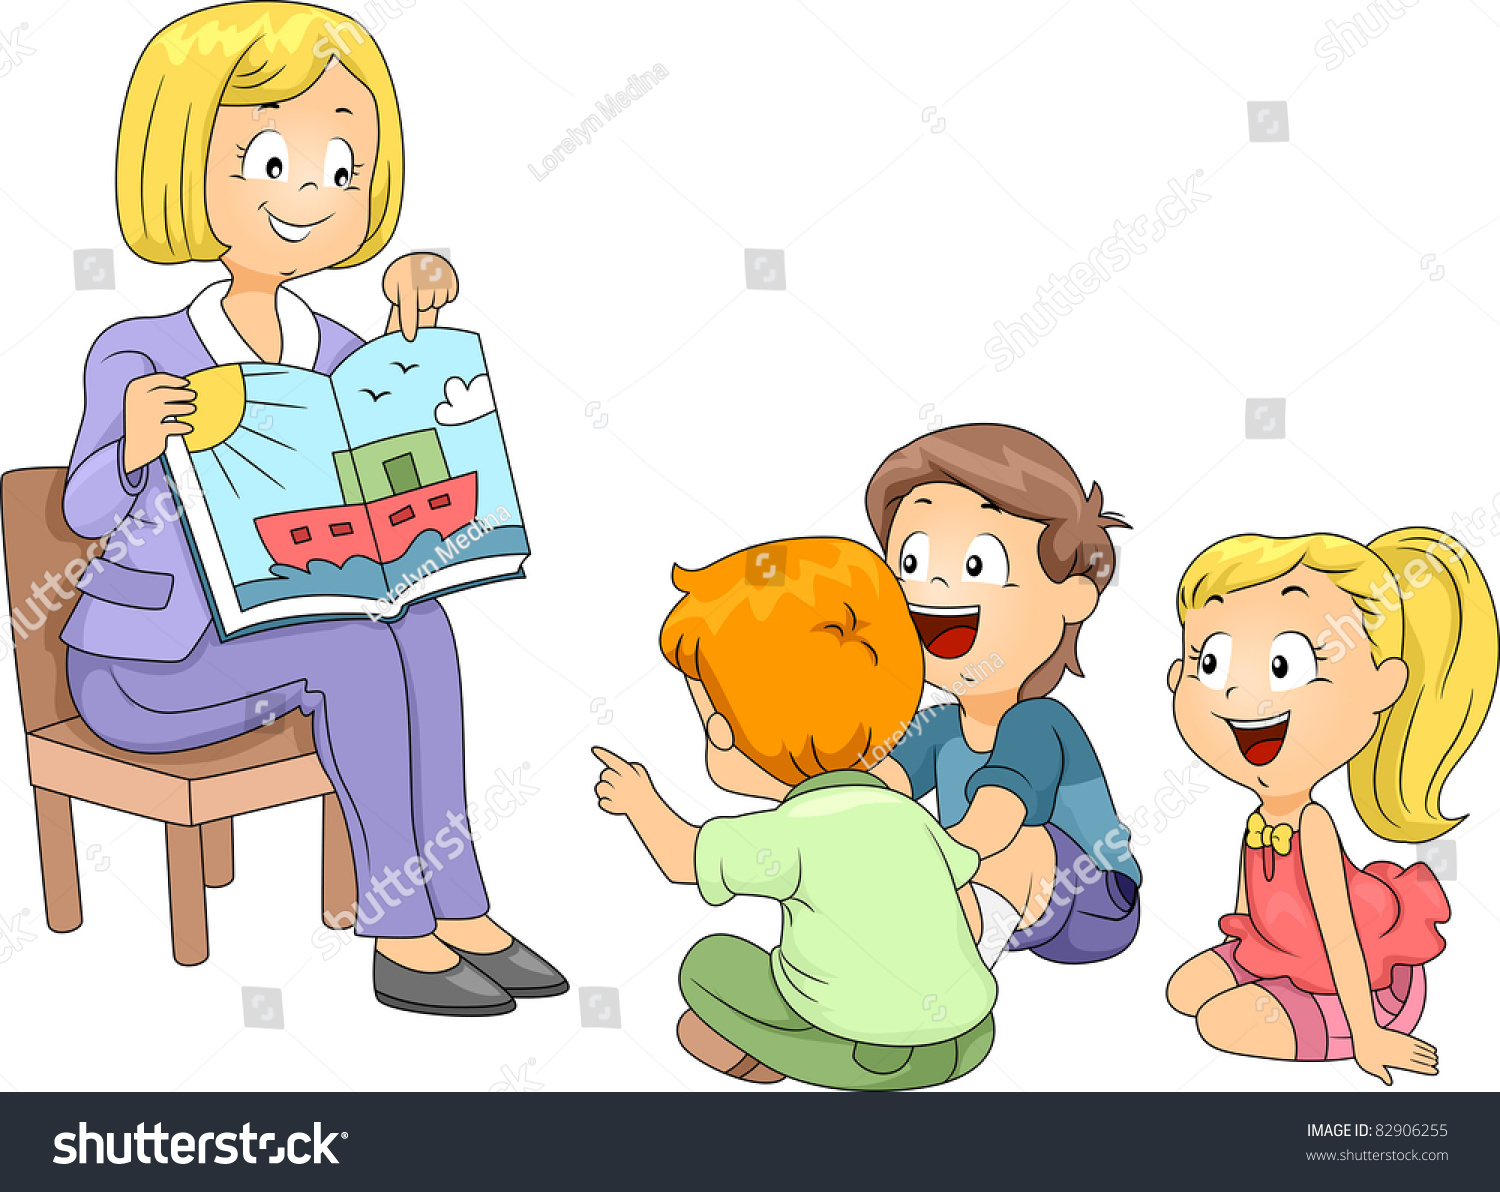 Children Listening To A Story Clipart.